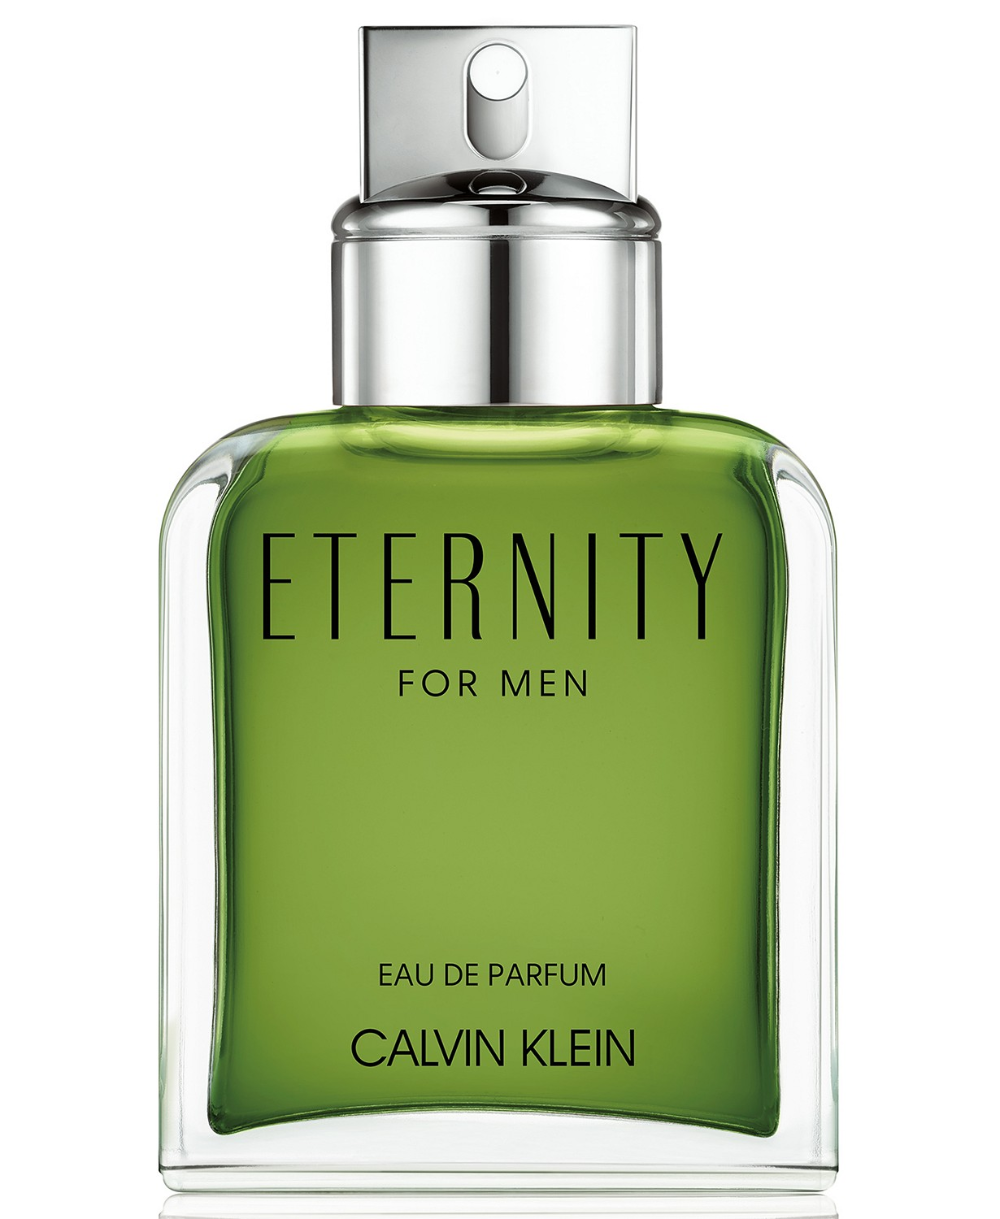 Calvin Klein Men S Eternity Eau De Parfum 1 6 Oz Reviews All Perfume Beauty Macy S In 2021 Eternity Calvin Klein Men Perfume Perfume